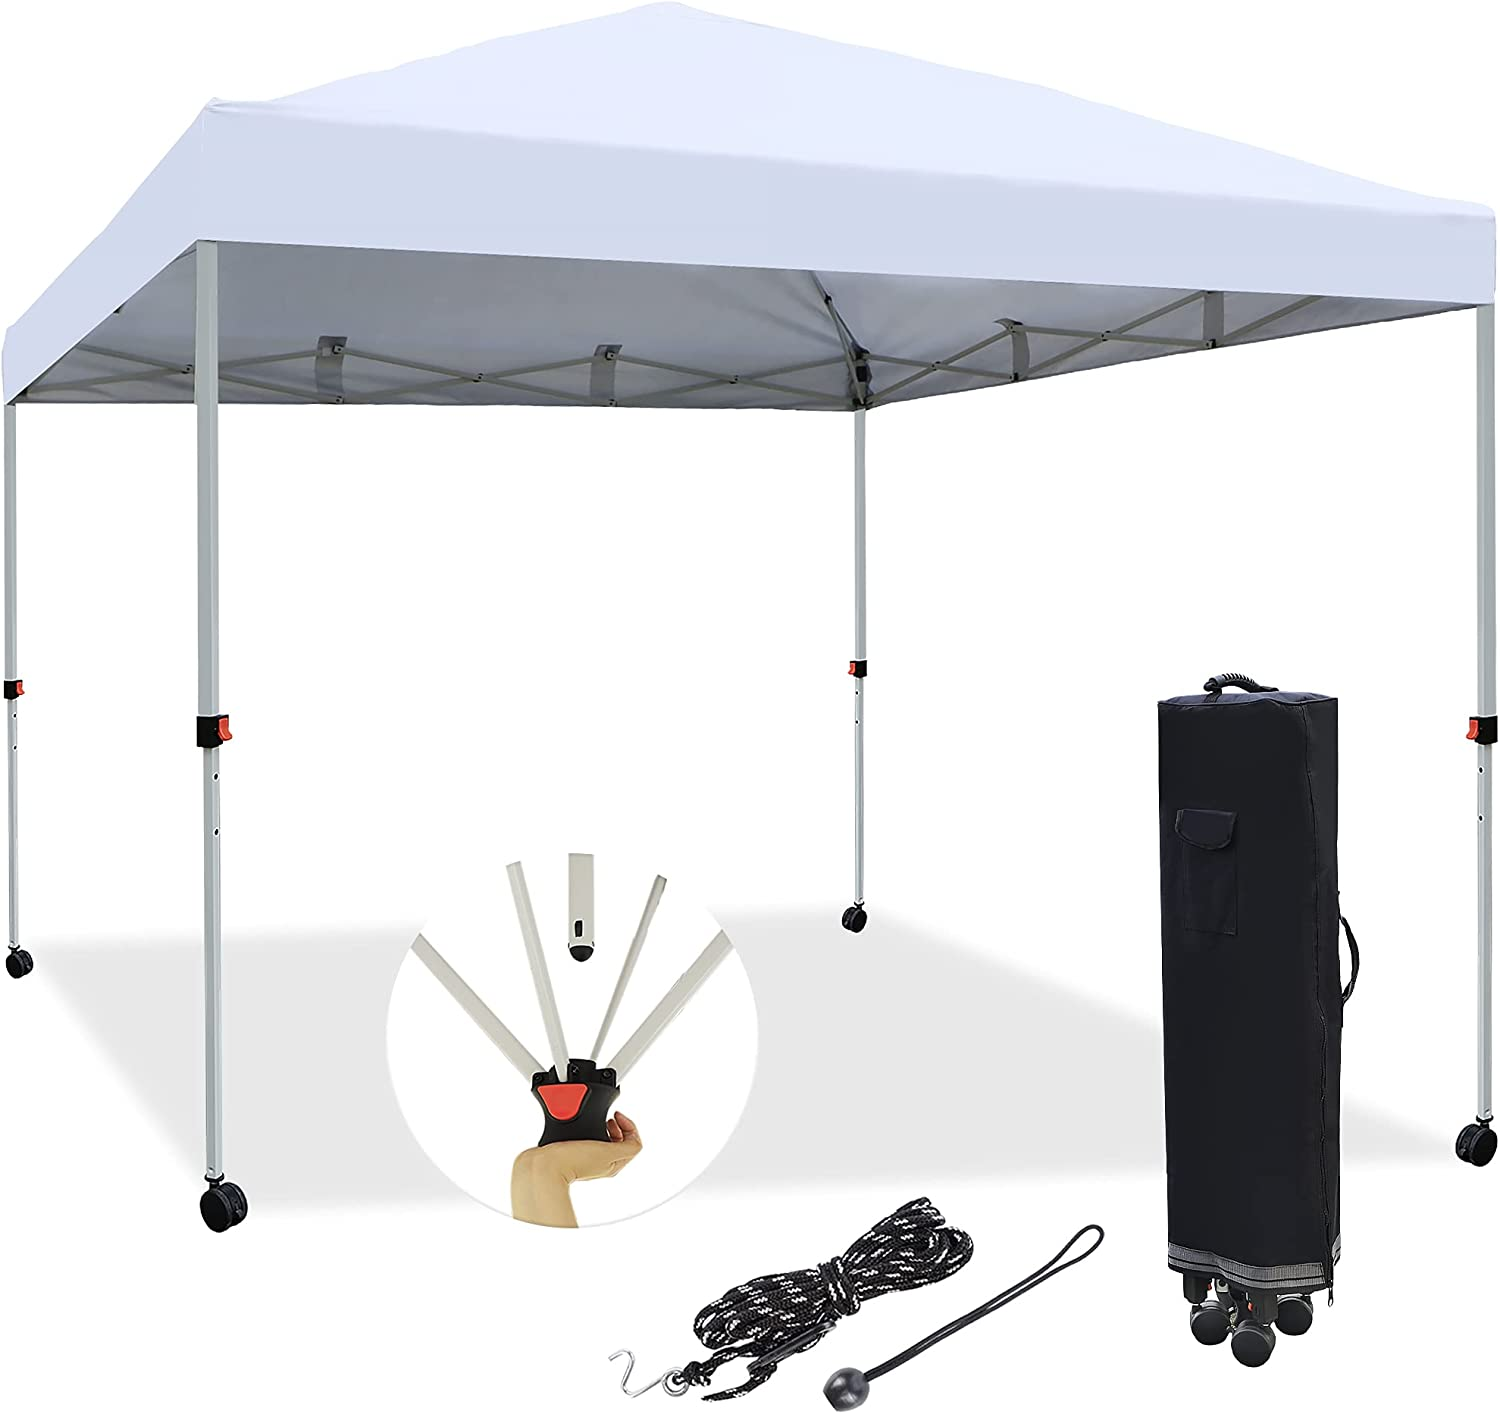 Blissun 10' x Pop Up Canopy Ou 激安 Shelter Tent Instant 送料無料(一部地域を除く)